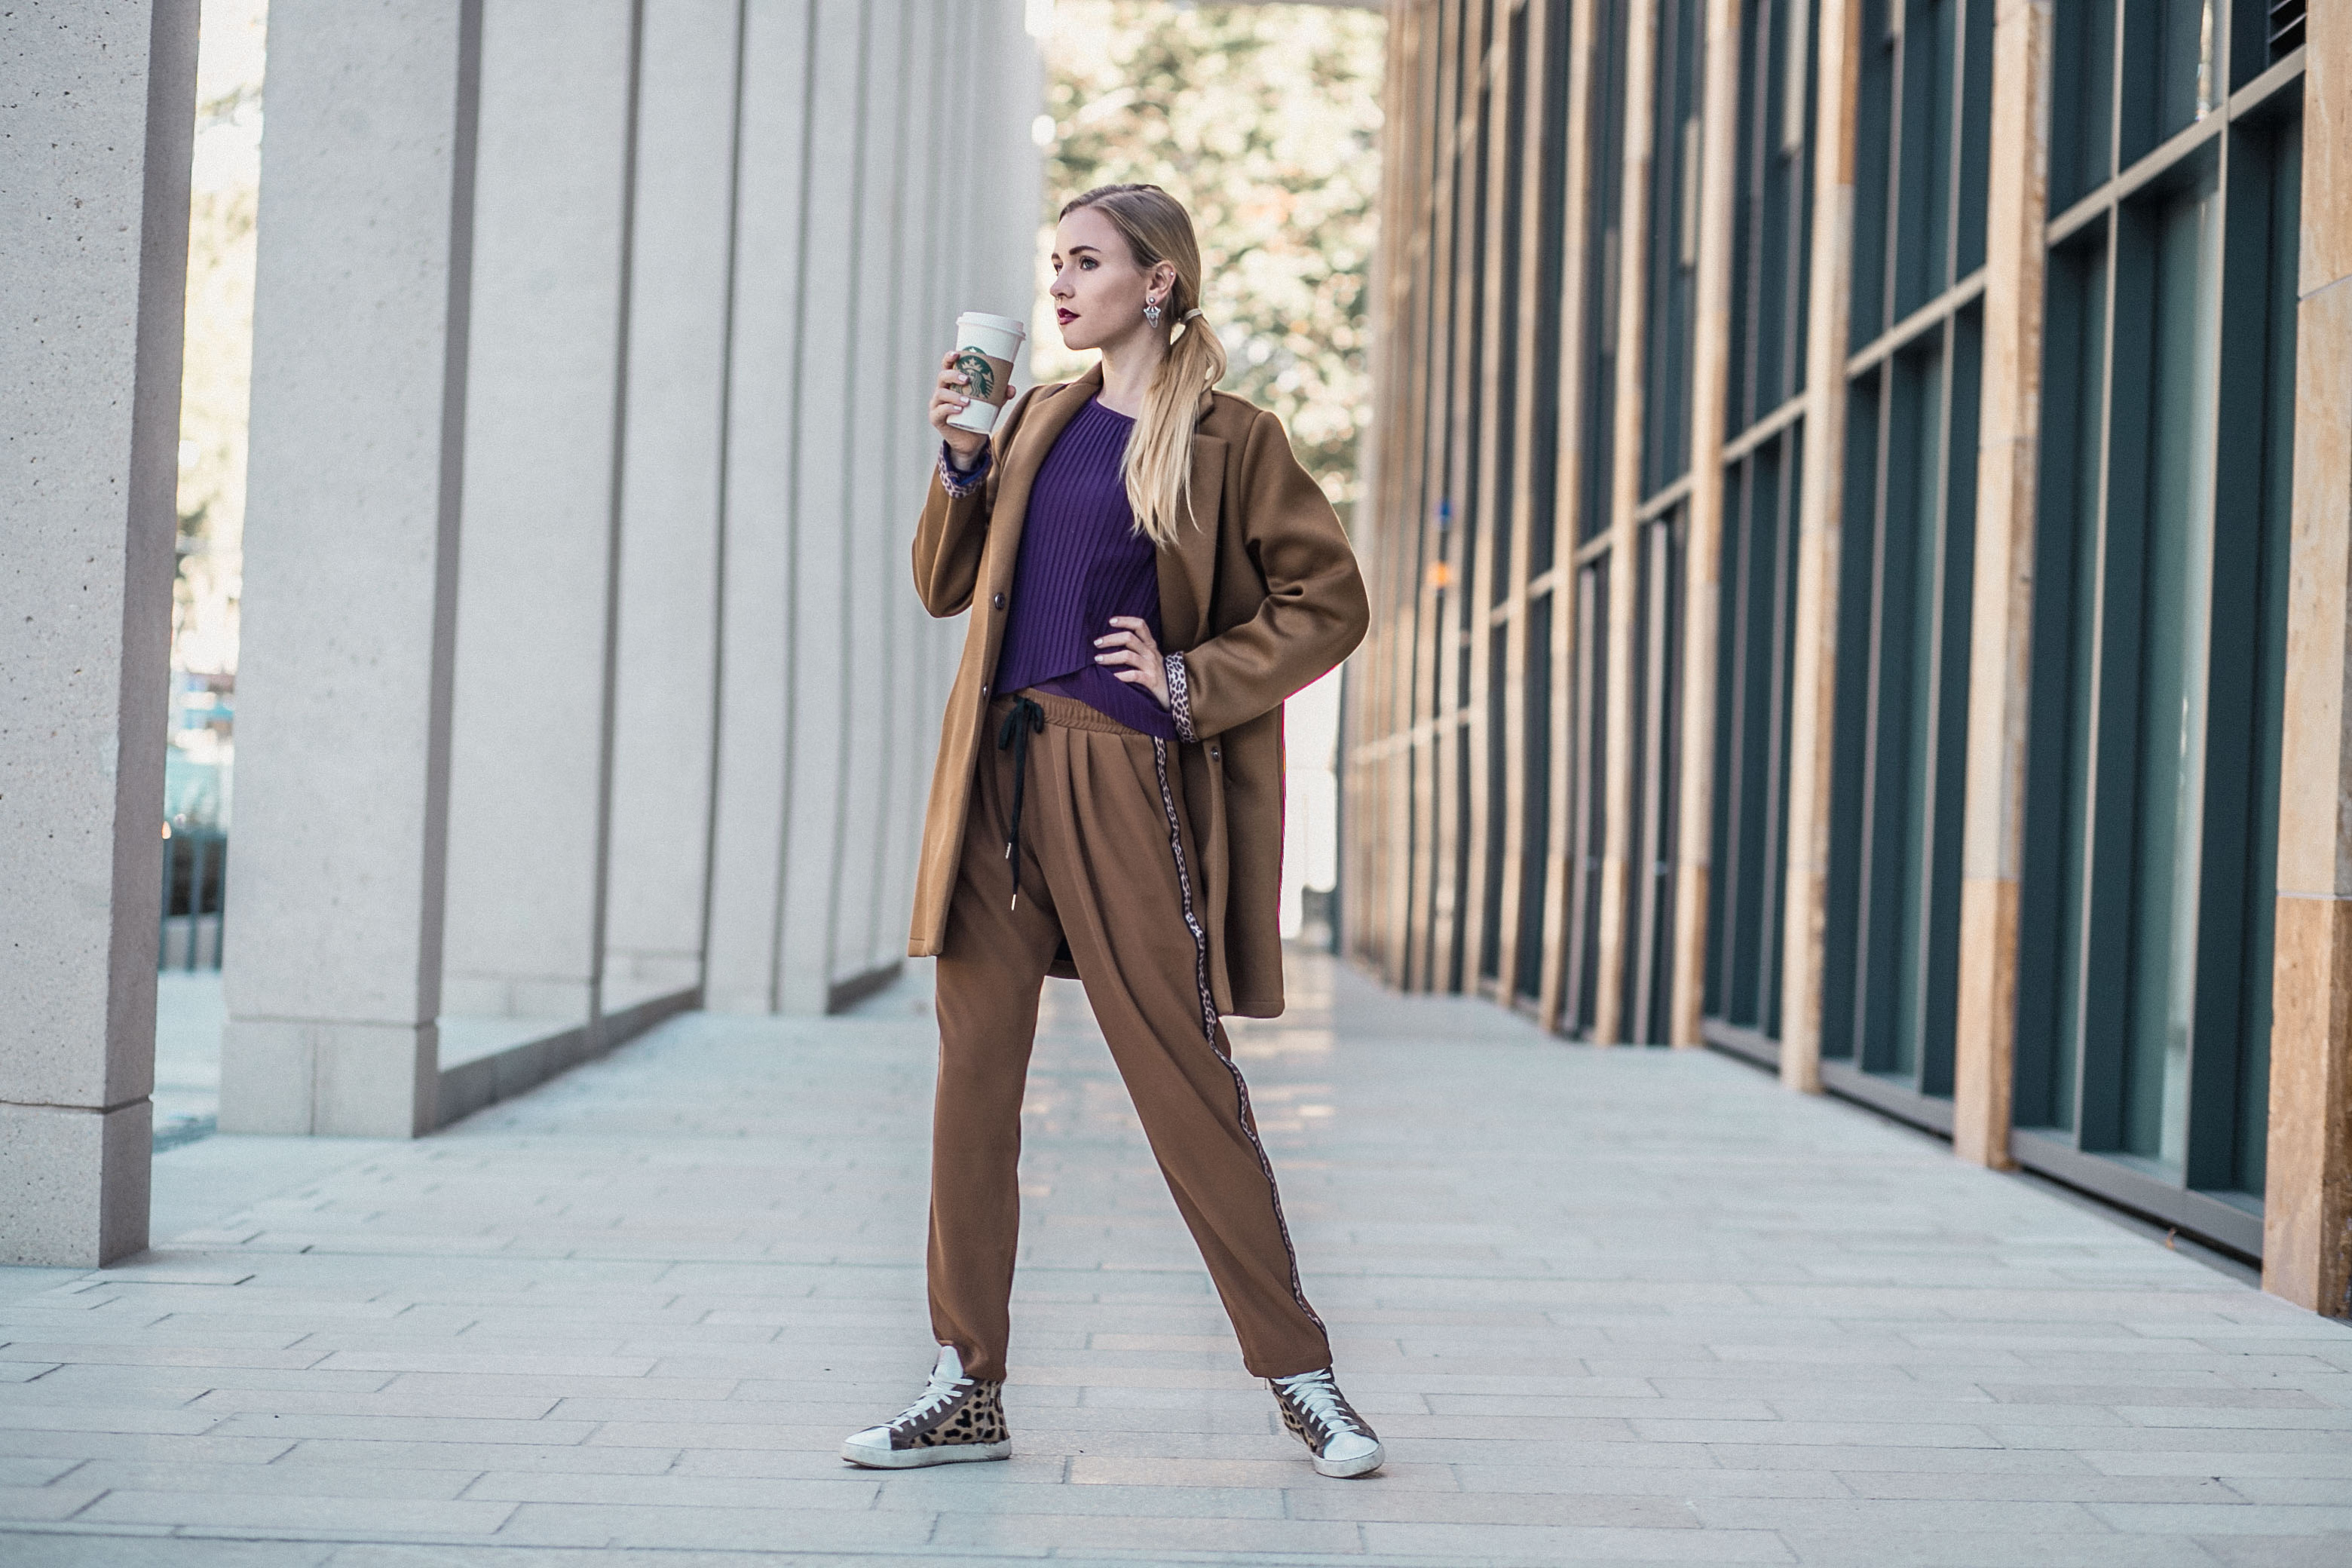 Herbst Trend: Casual City Look mit Incognito Morning Elegance